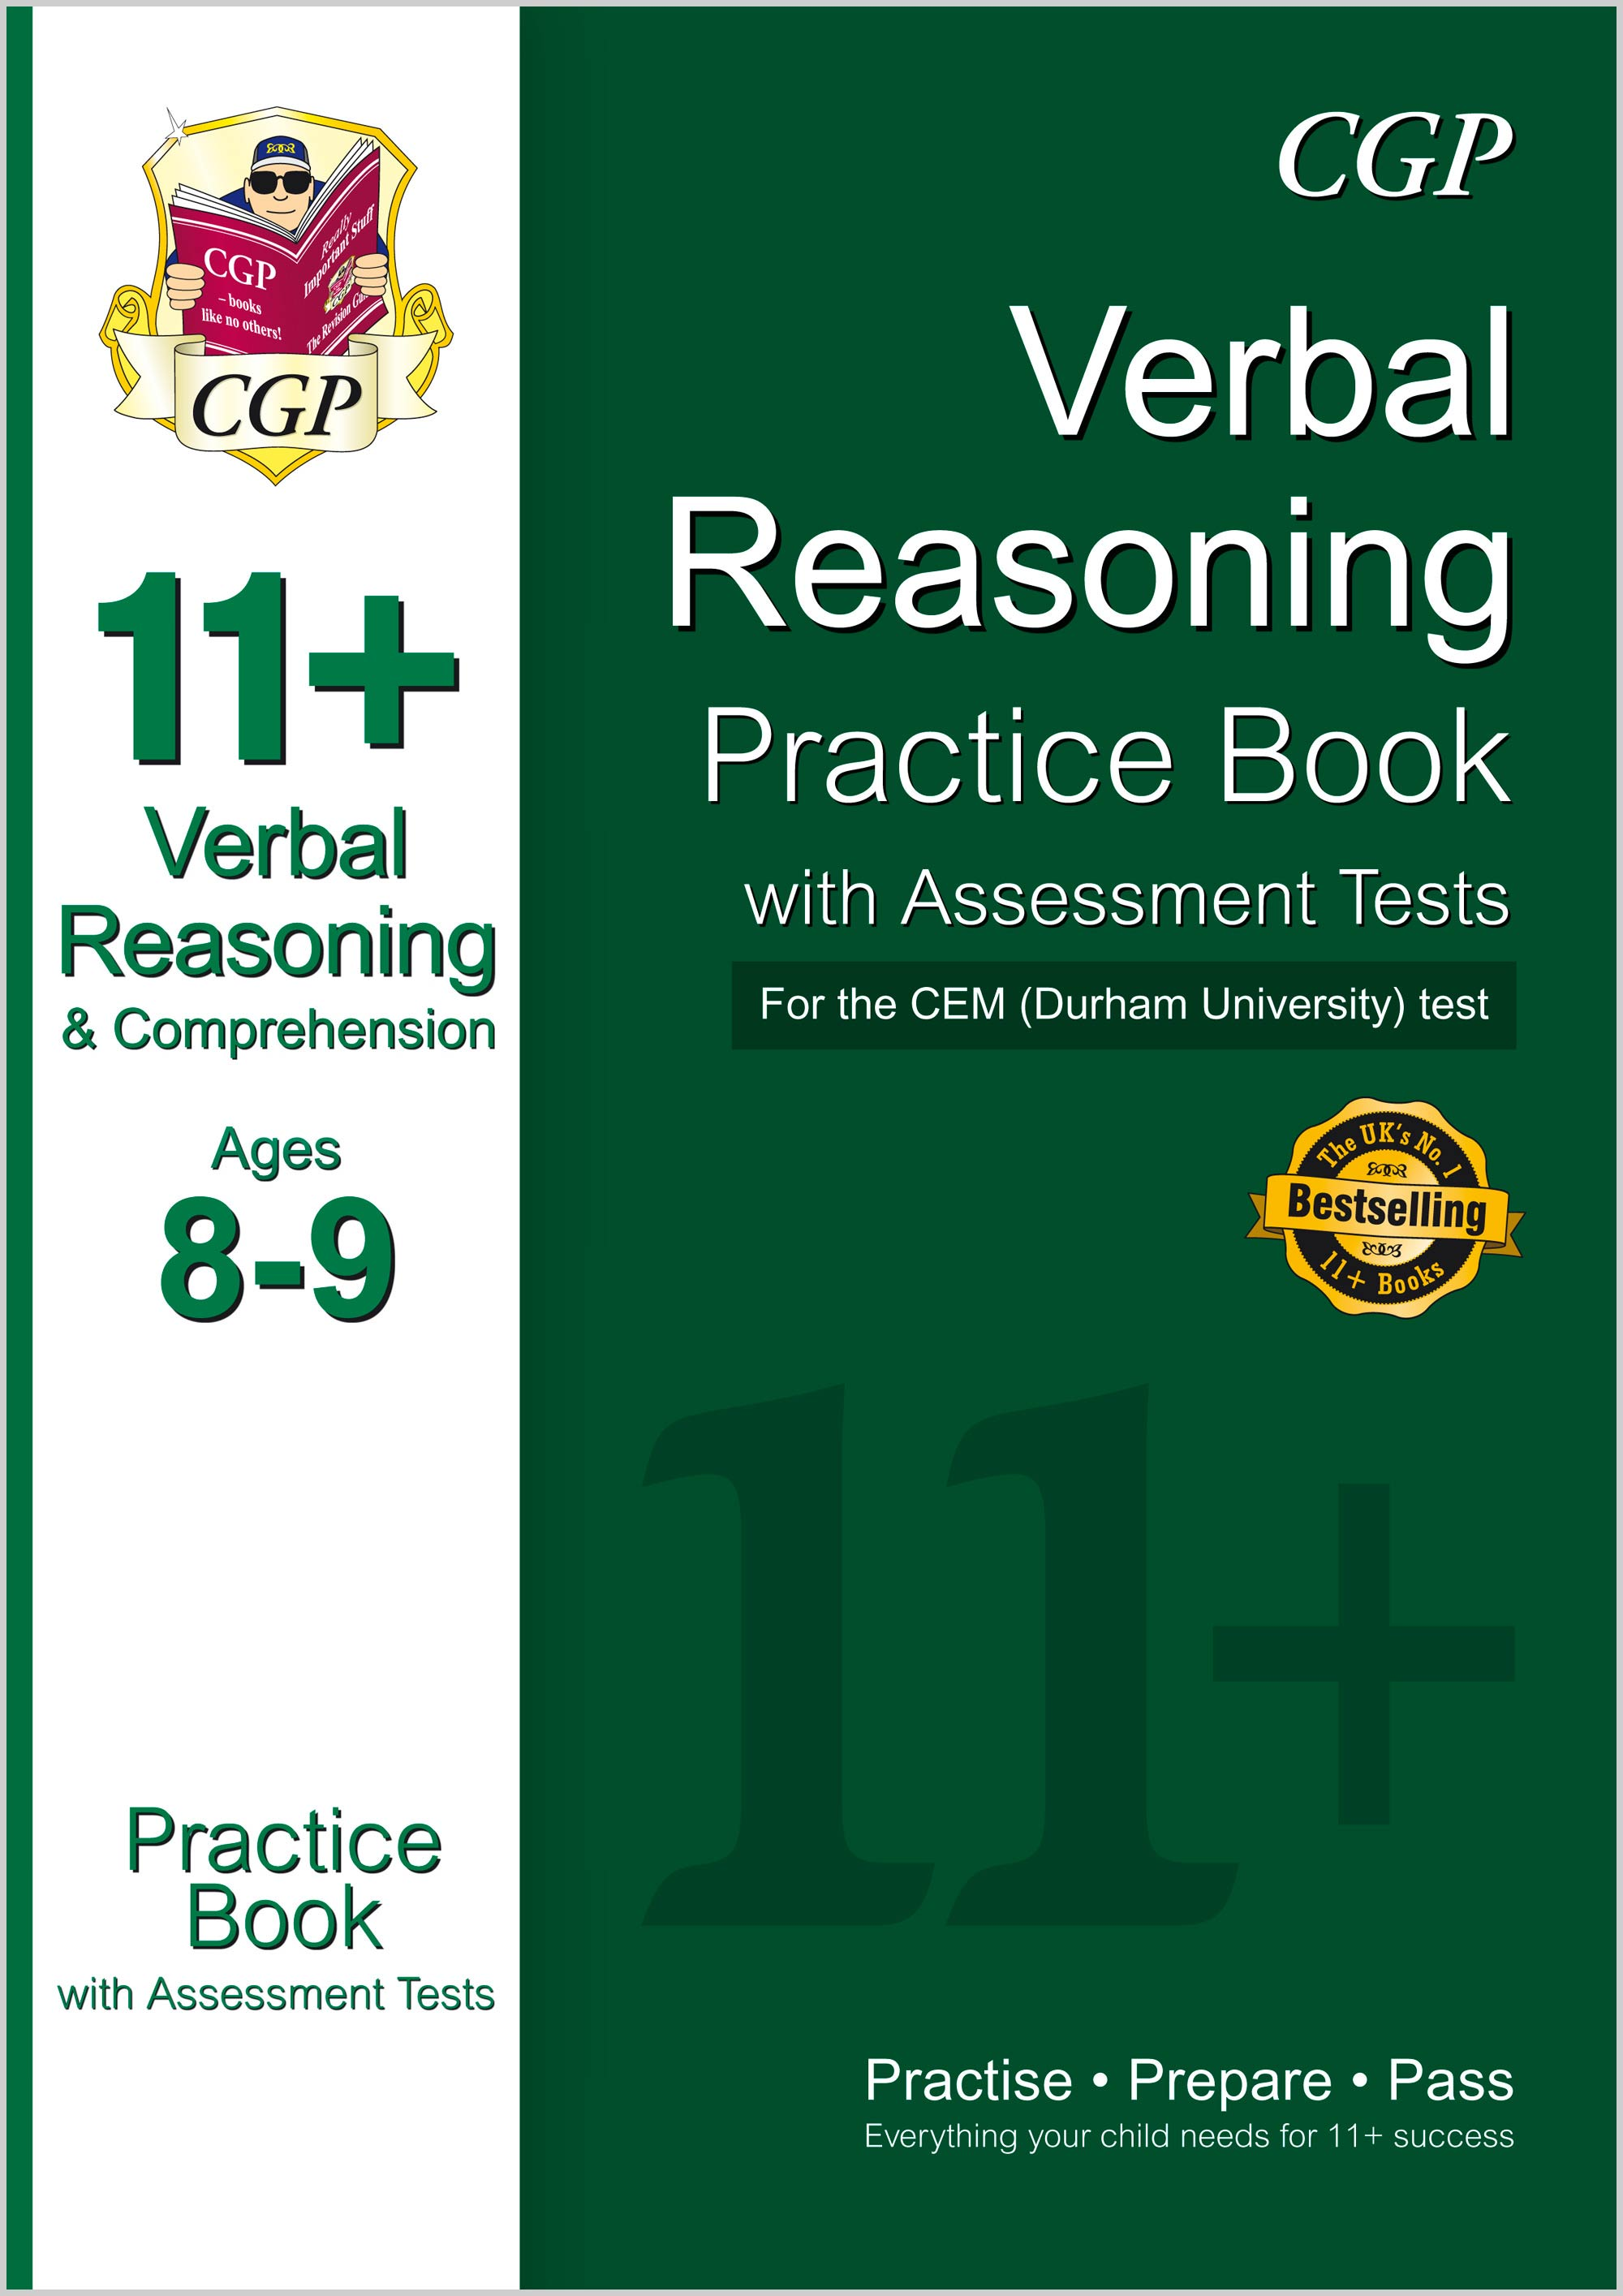 V4QDE1 - 11+ Verbal Reasoning Practice Book with Assessment Tests (Ages 8-9) for the CEM Test